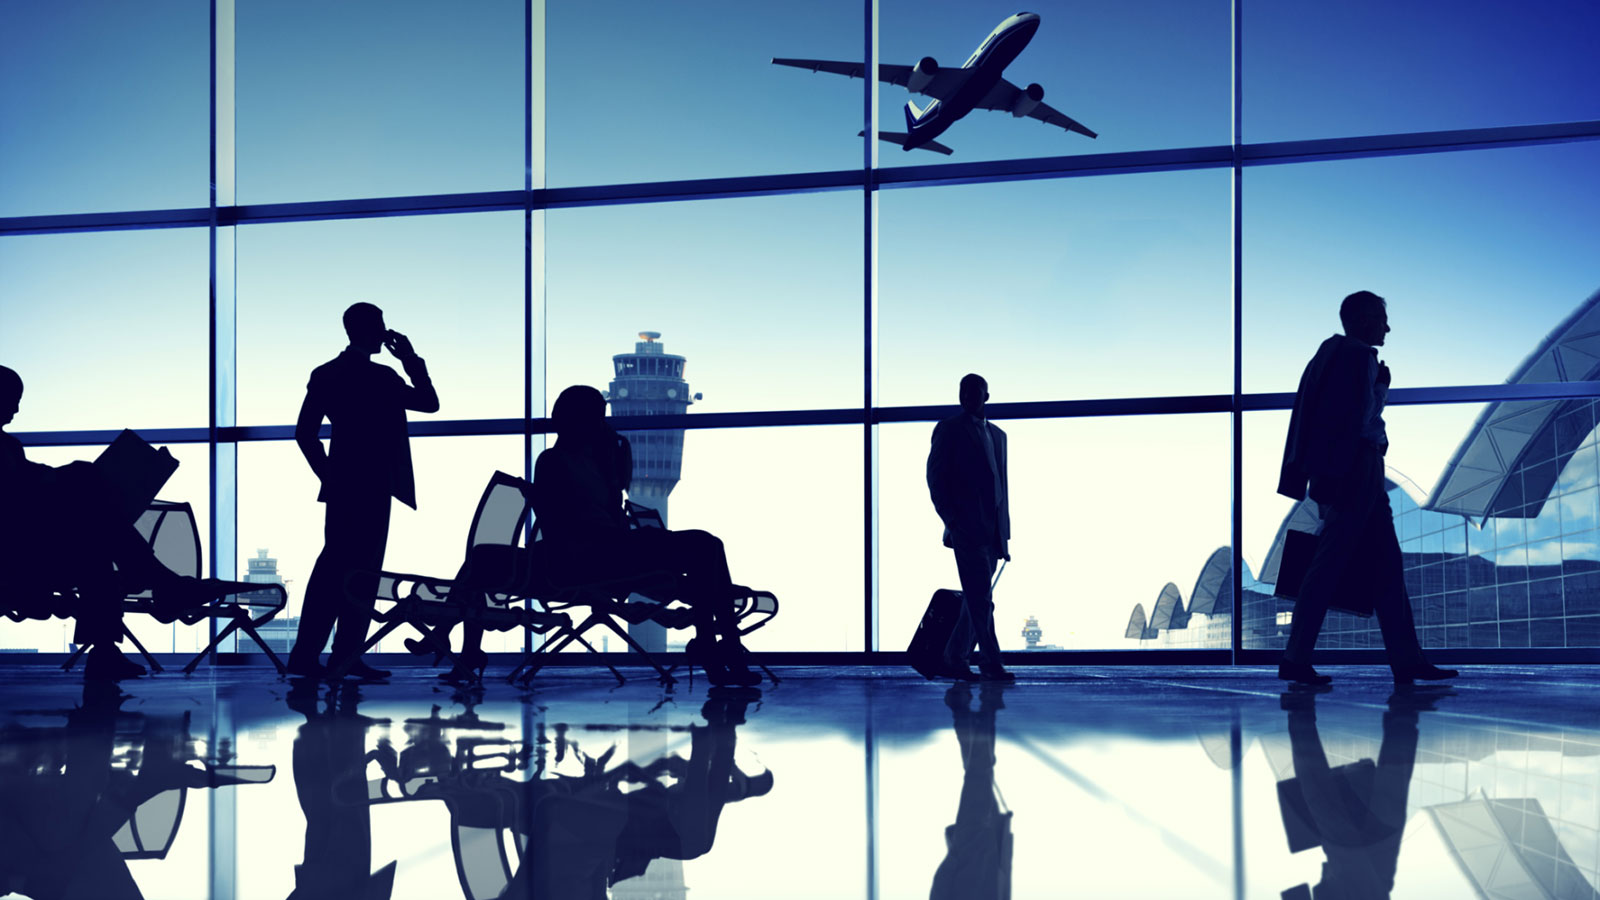 Travelers in an airport lounge with airplane taking off